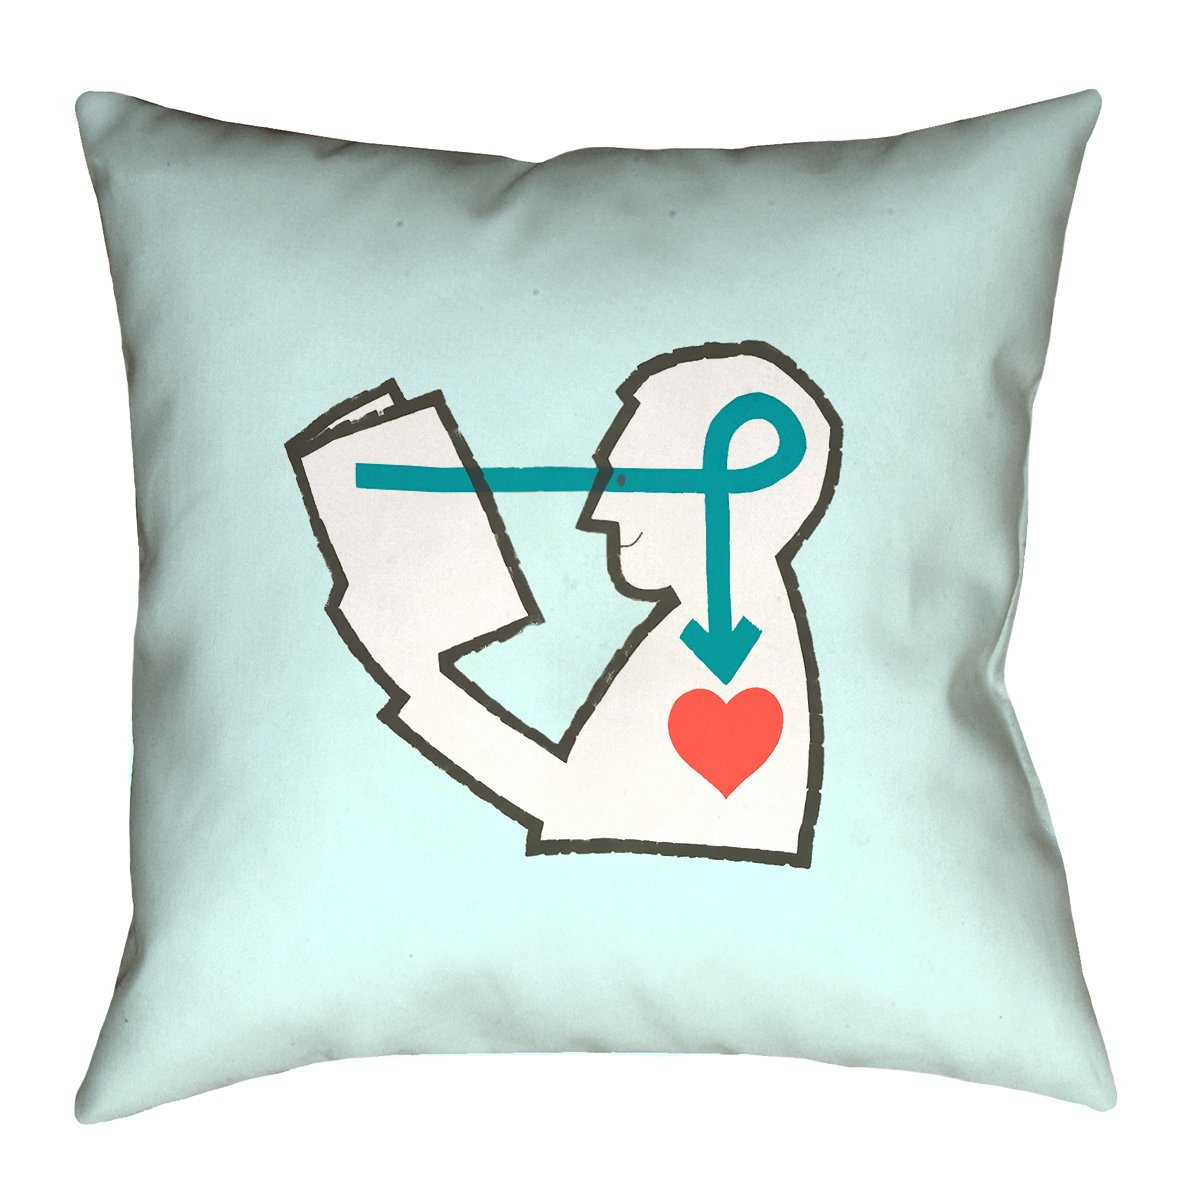 ArtVerse Katelyn Smith Reading Love Blue 18'' x 18'' Pillow-Faux Linen (Updated Fabric) Double Sided Print with Concealed Zipper & Insert by ArtVerse (Image #1)